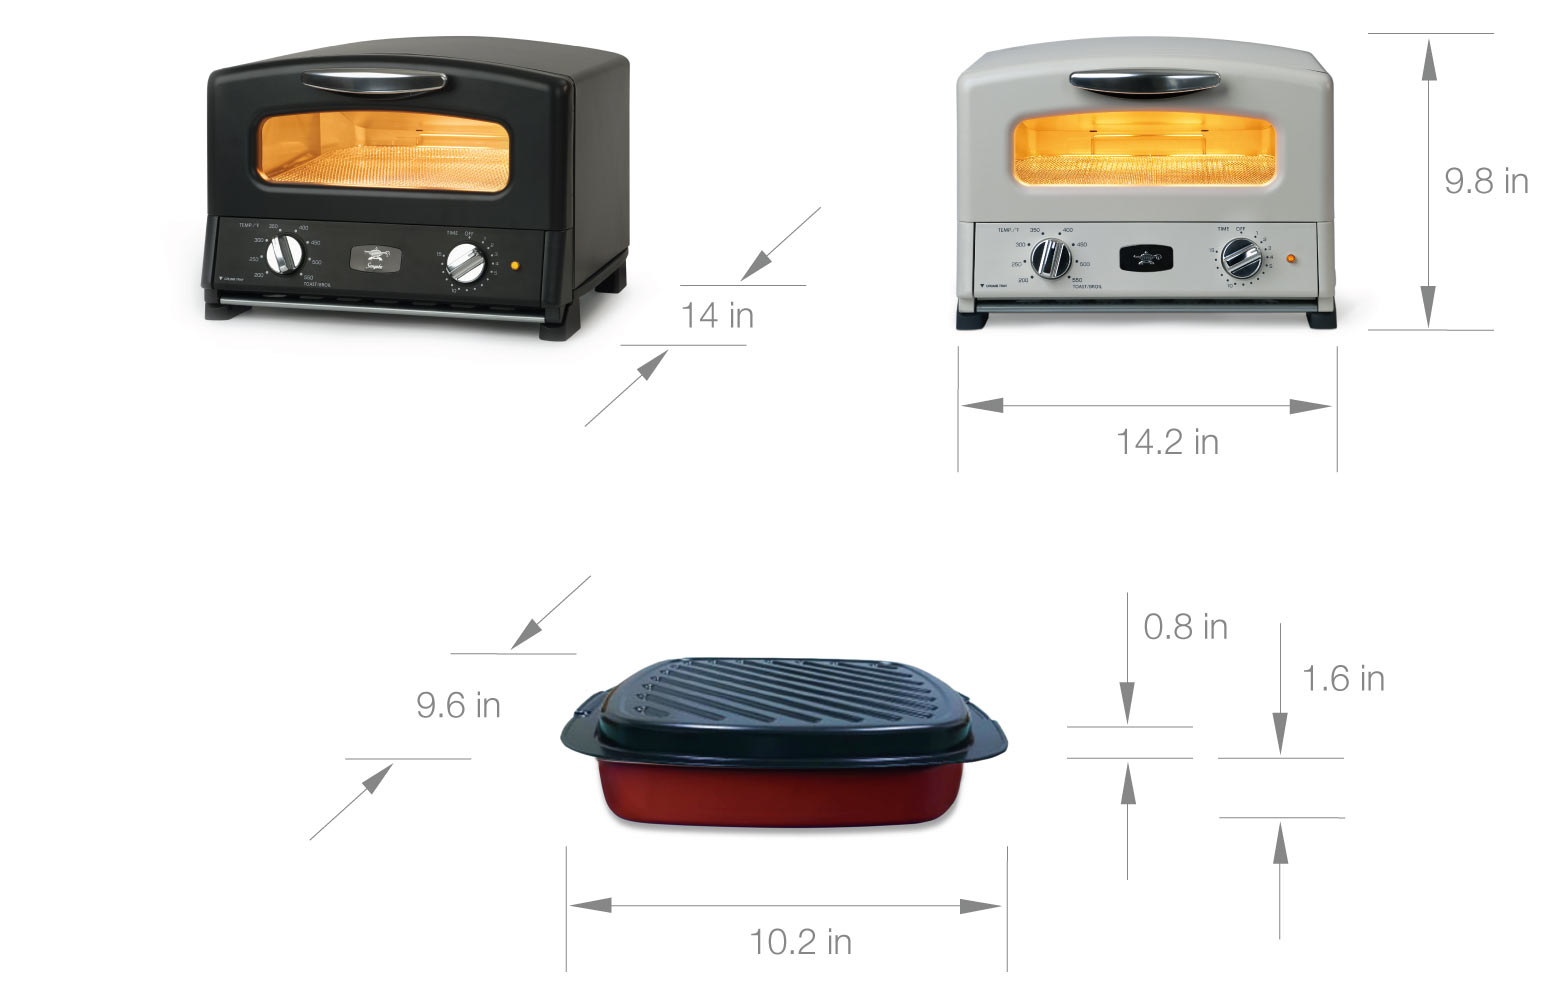 Toaster-Oven-Dimensions-r1